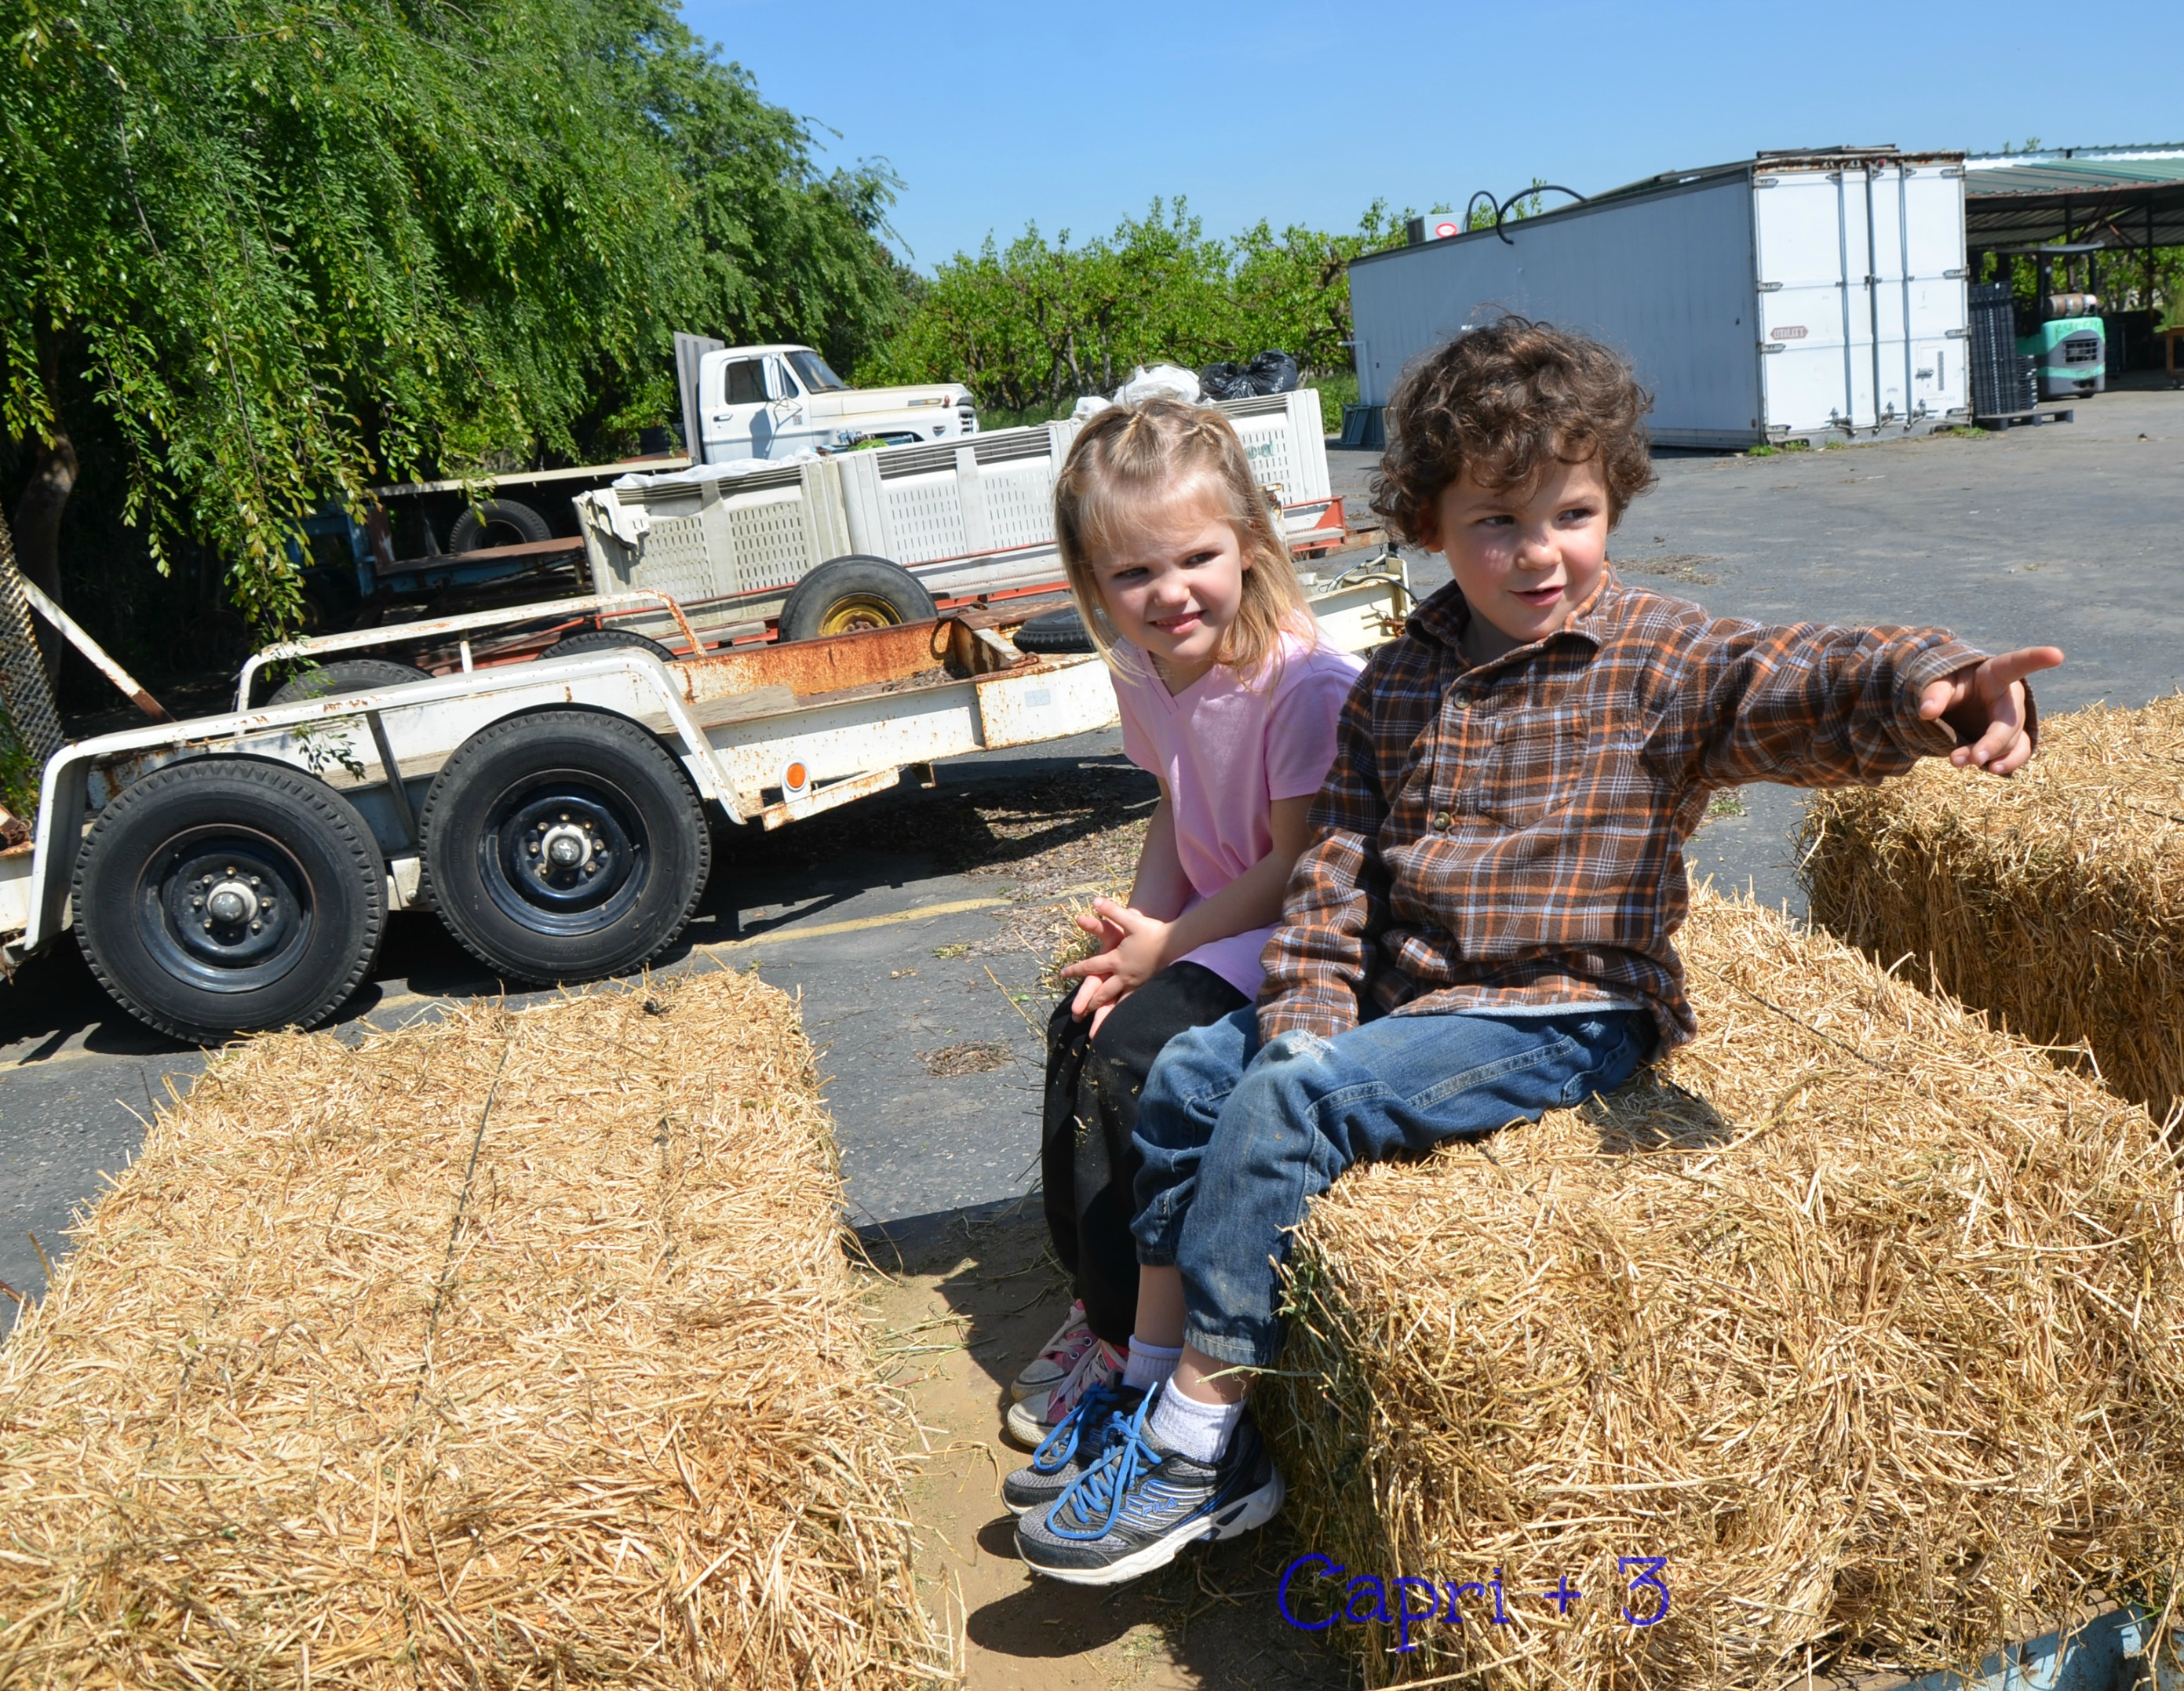 A hayride was part of the day's adventures on the tour of the farms and facilities.